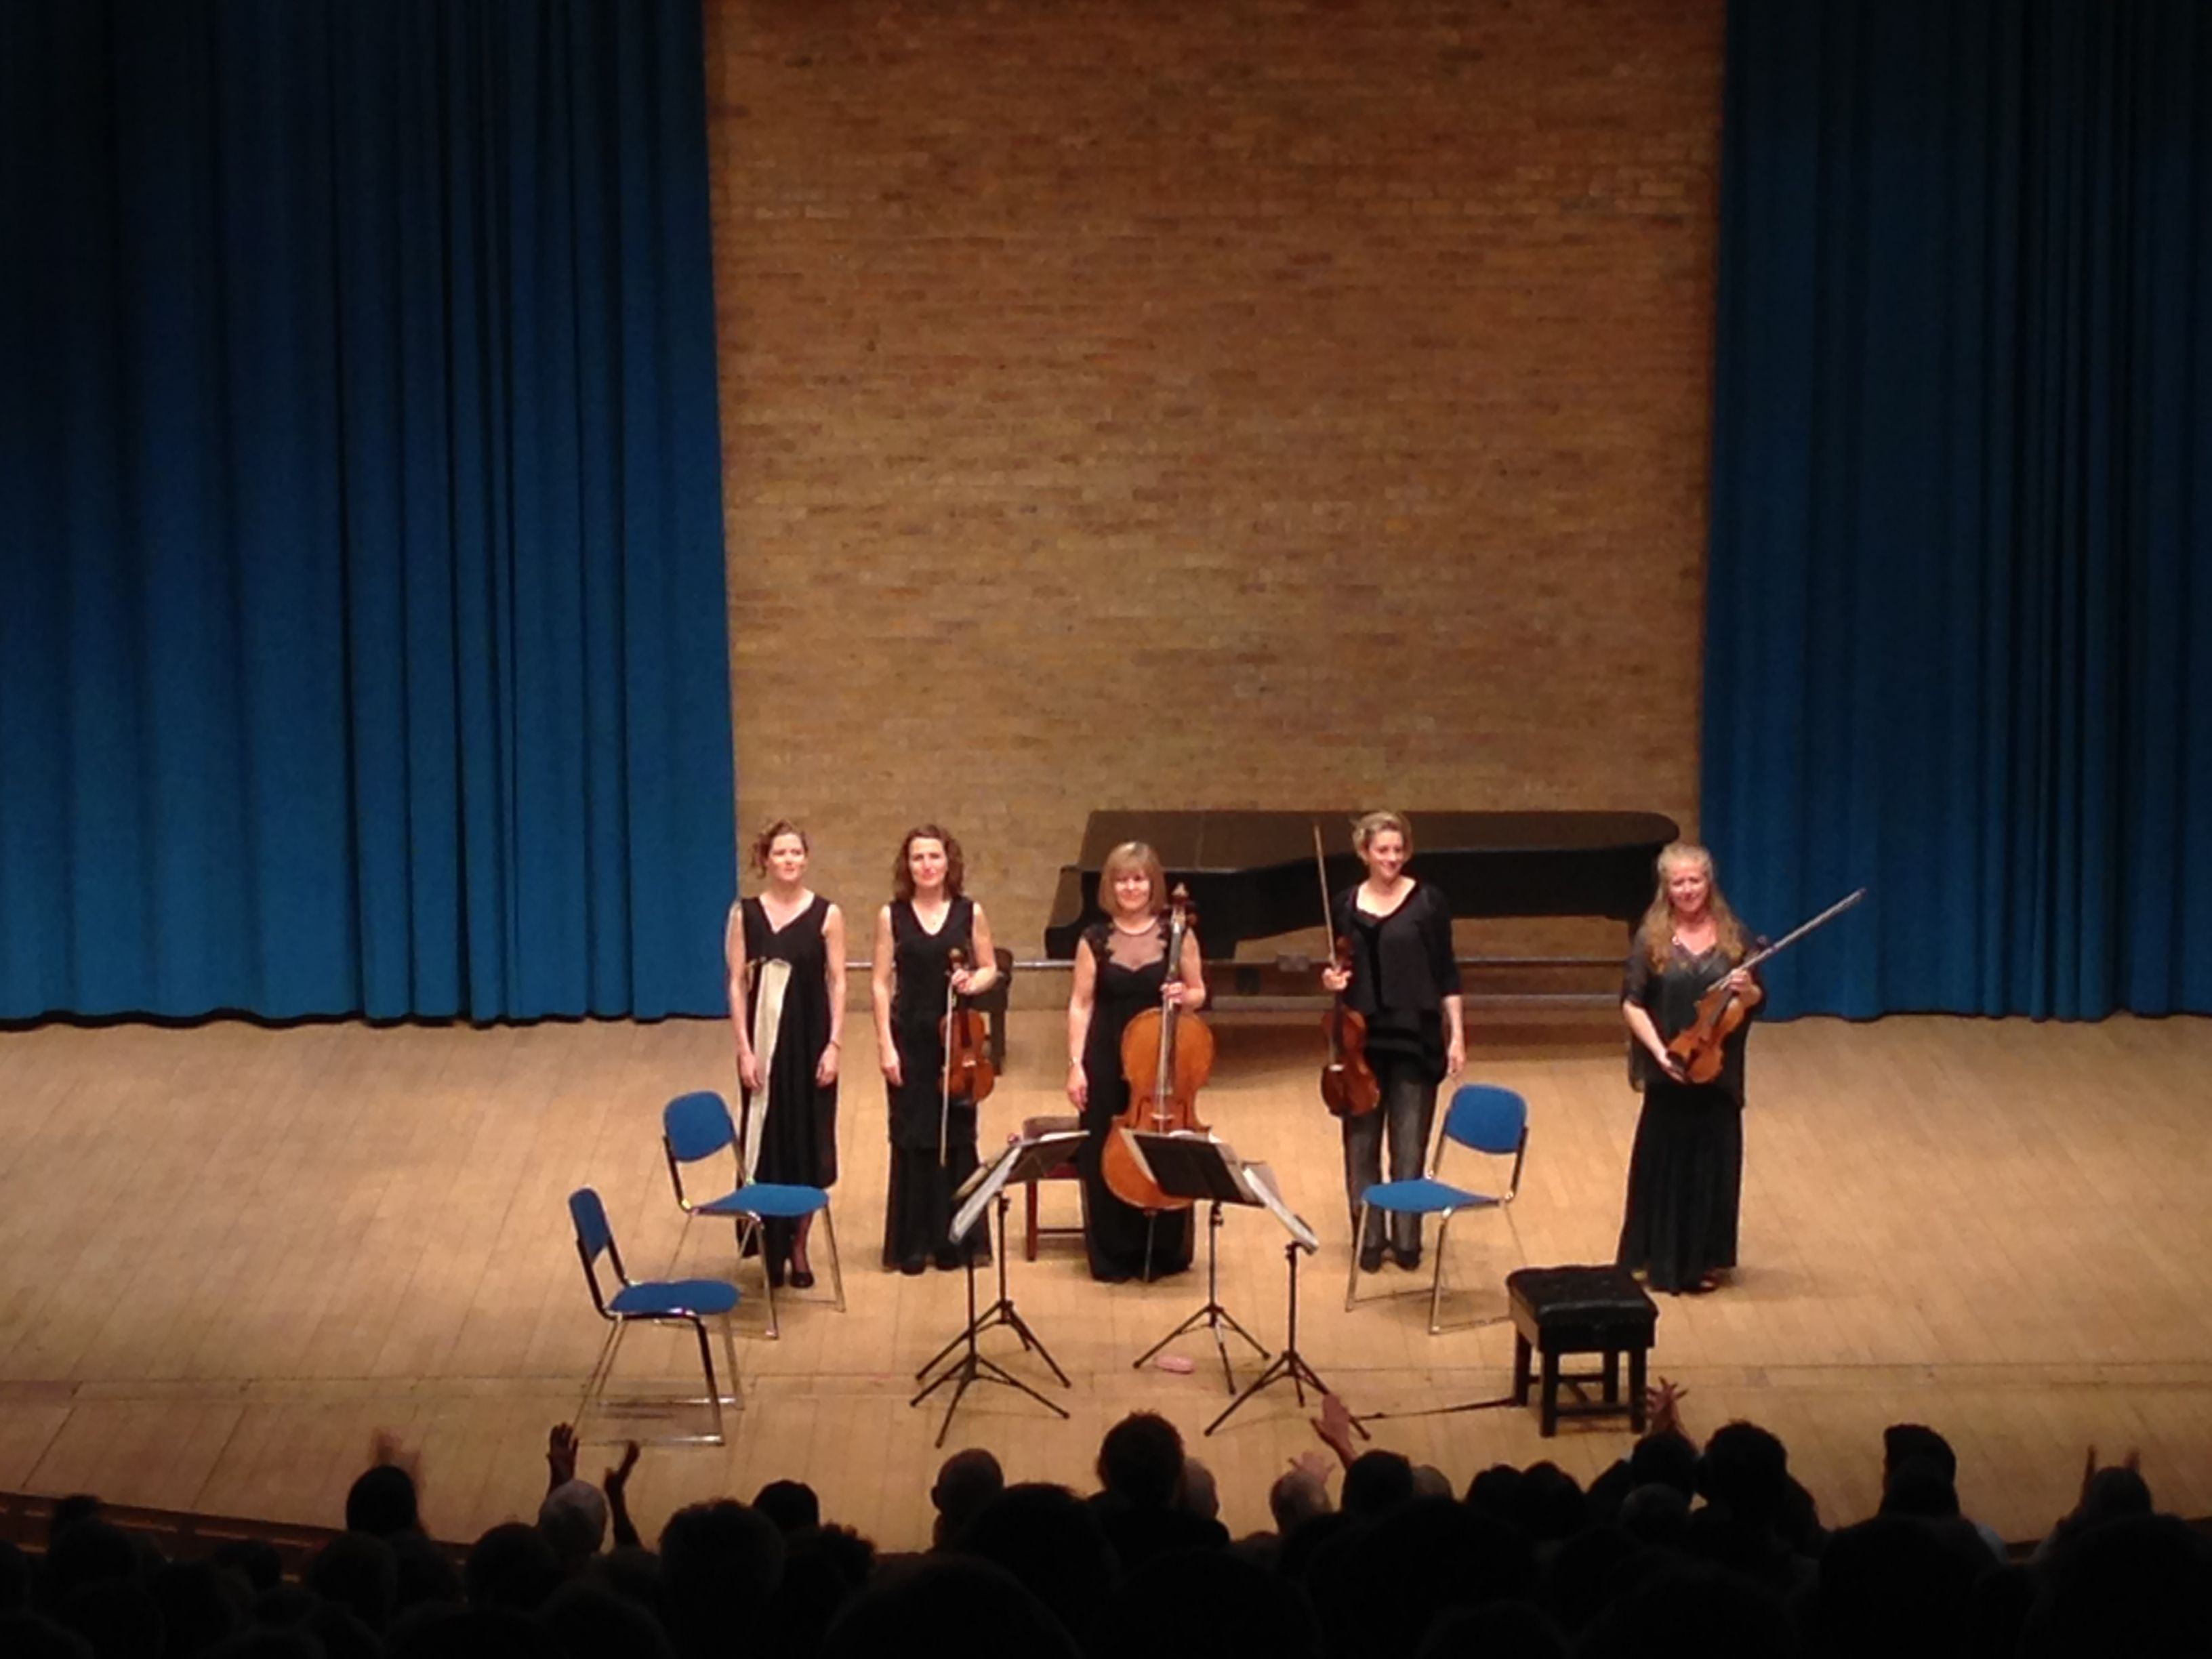 Barbara Hannigan and string principals from Britten Sinfonia take their bows after In Focus II in Cambridge (2/5/15)